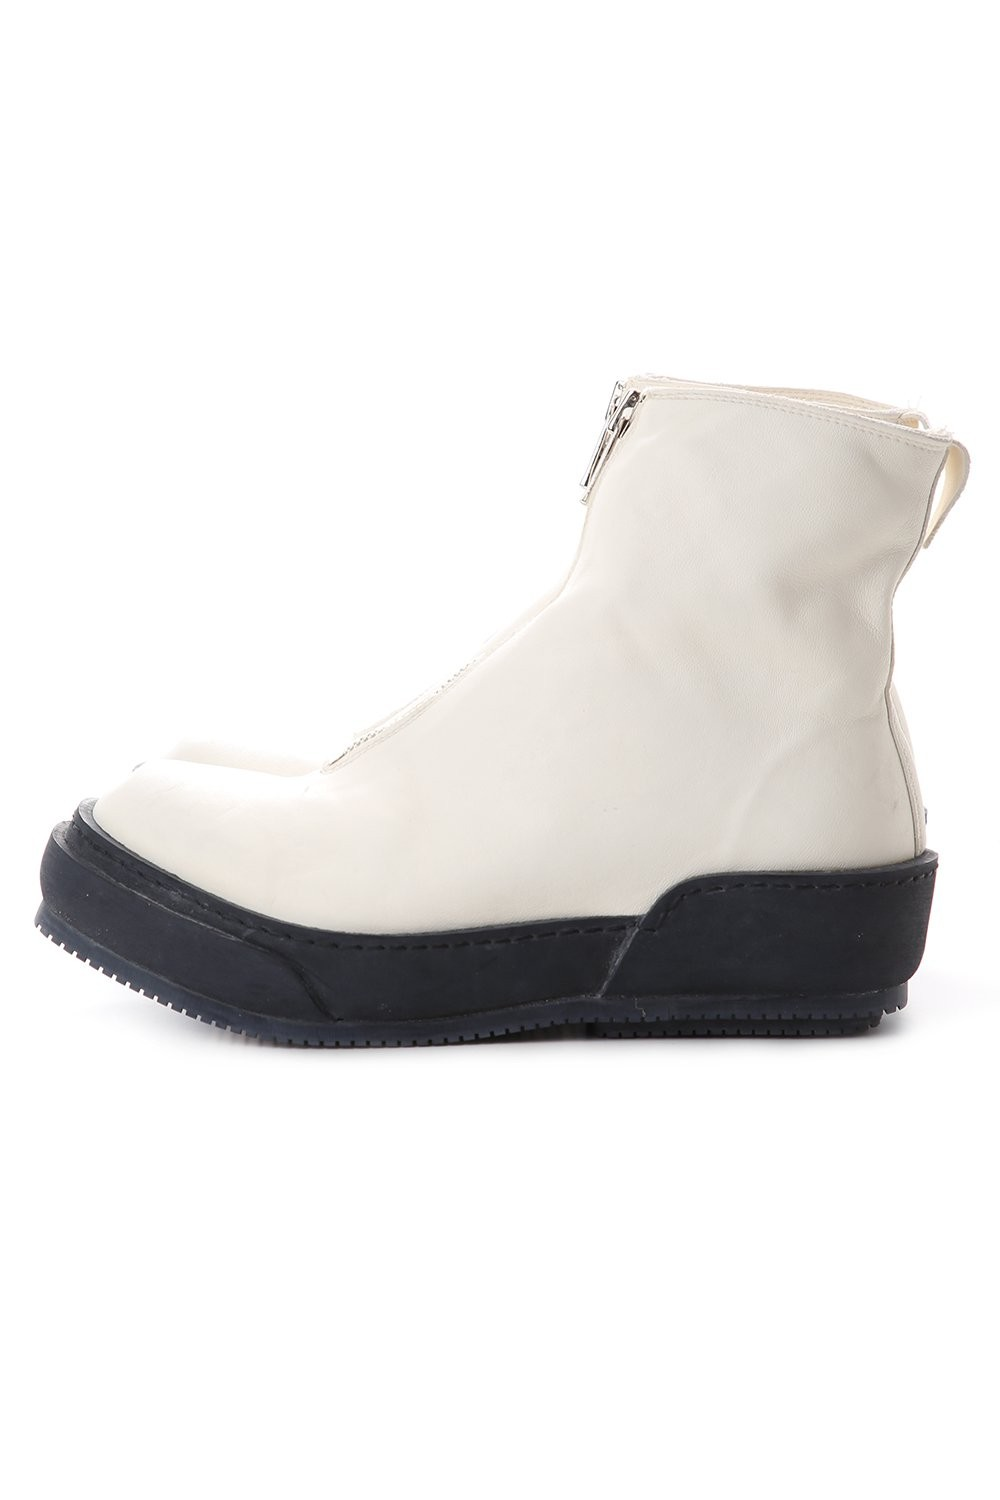 Soft Horse Full Grain Lined Front Zip Boots - PLS